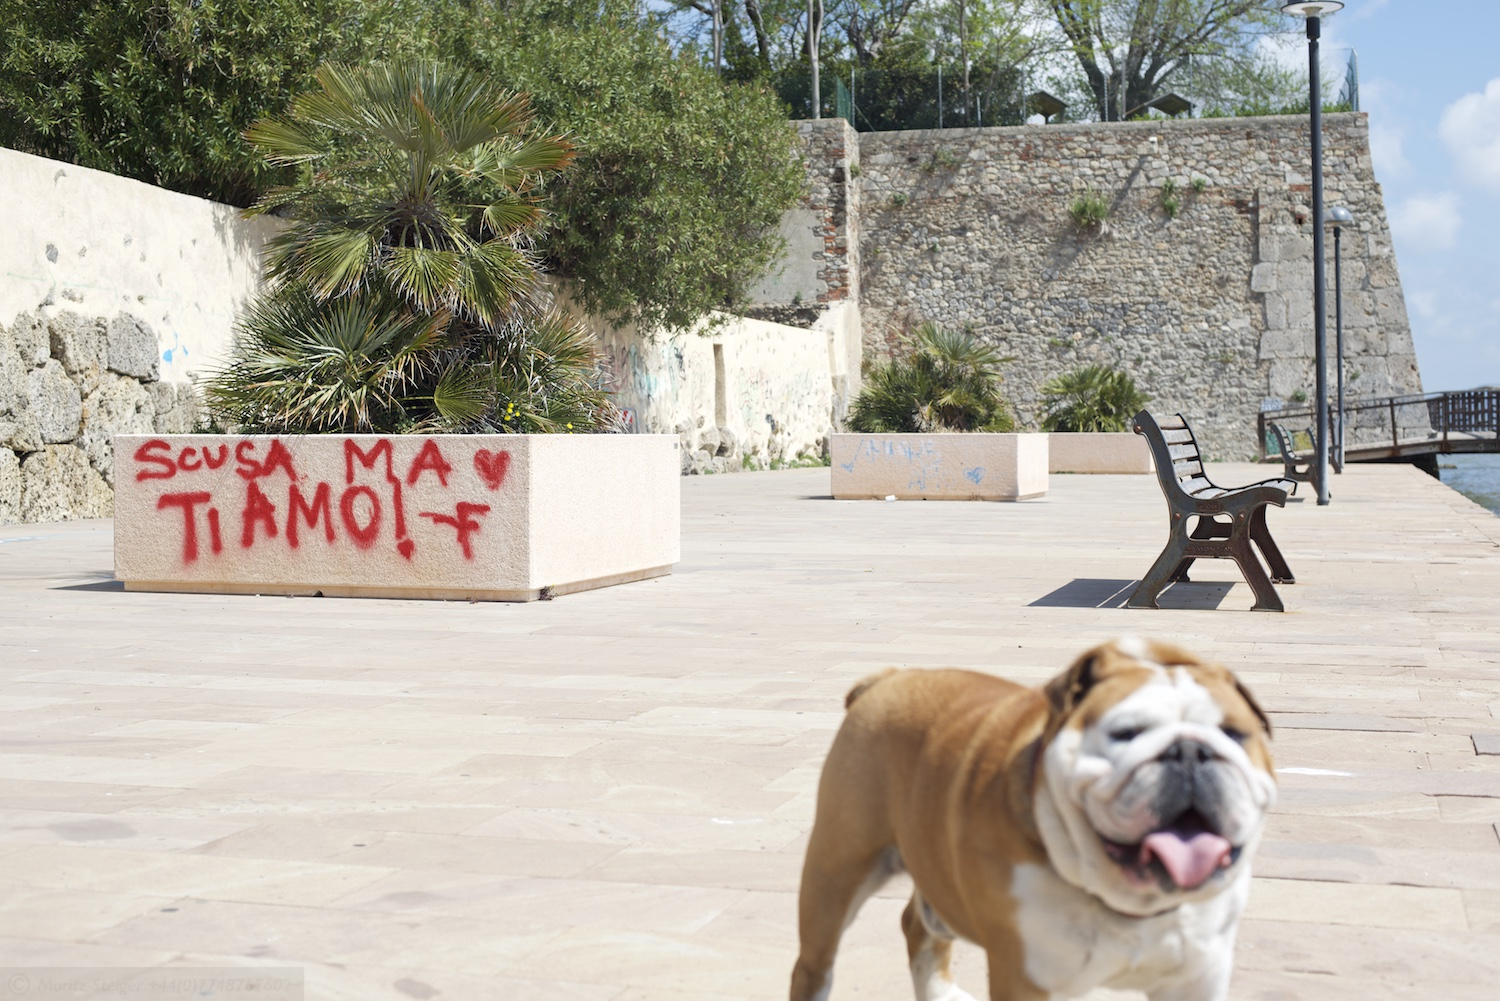 Rudy-Bulldog-Orbetello_DSC_8570